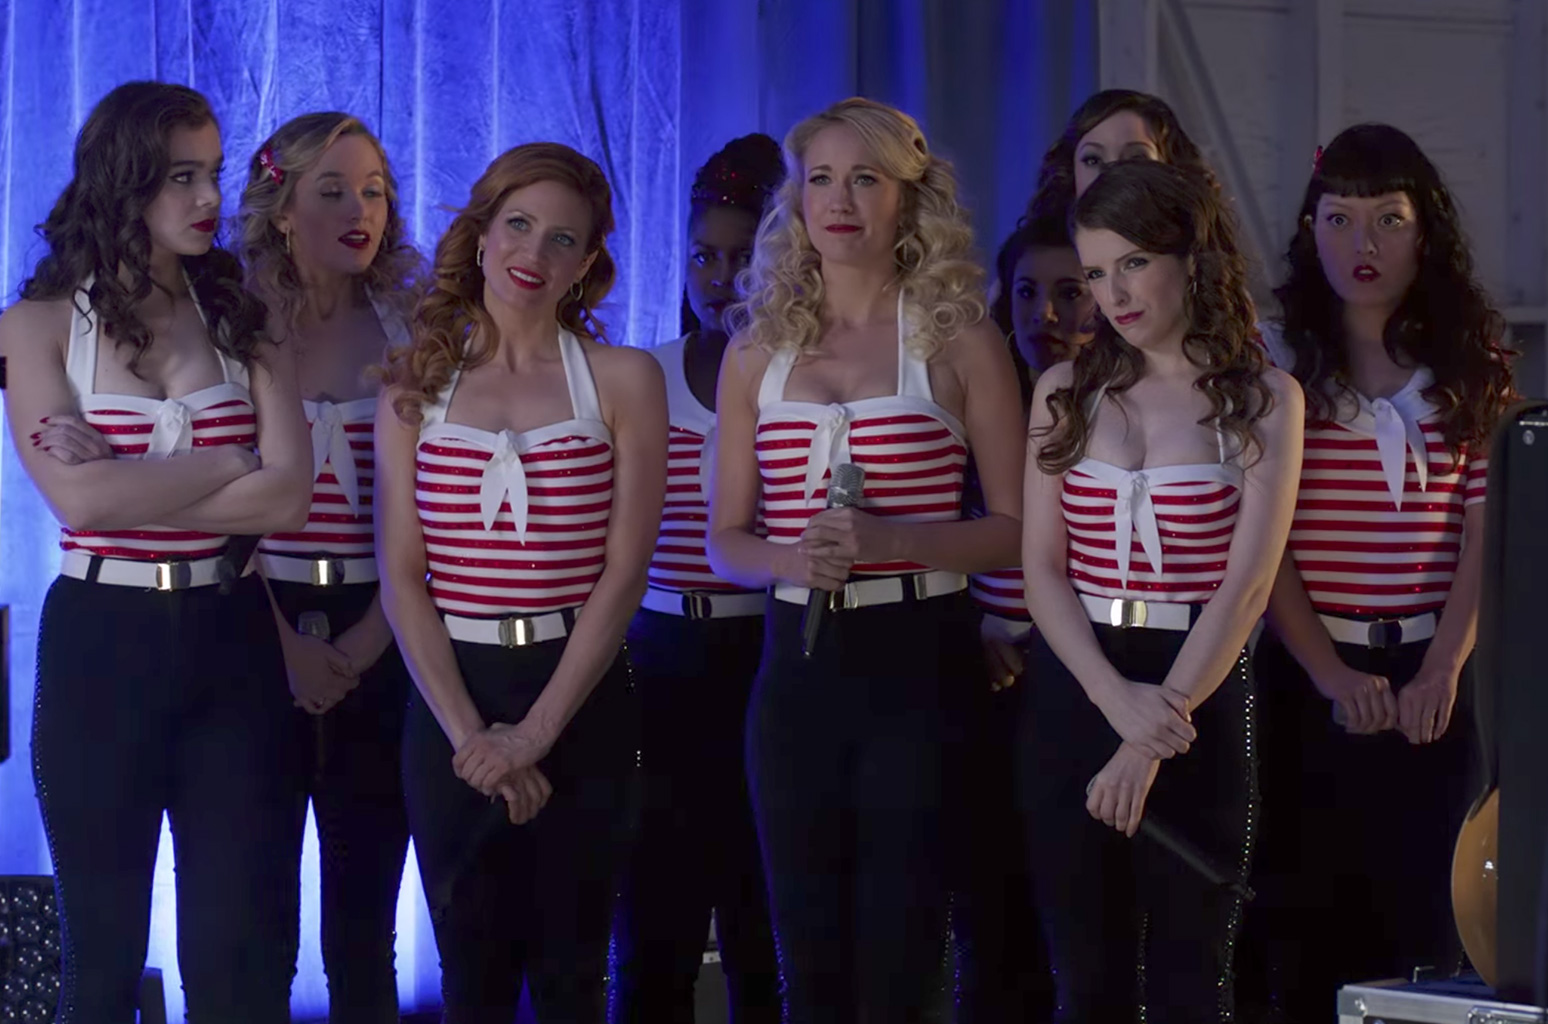 'Pitch Perfect 3' is what happens when a series holds one note for too long